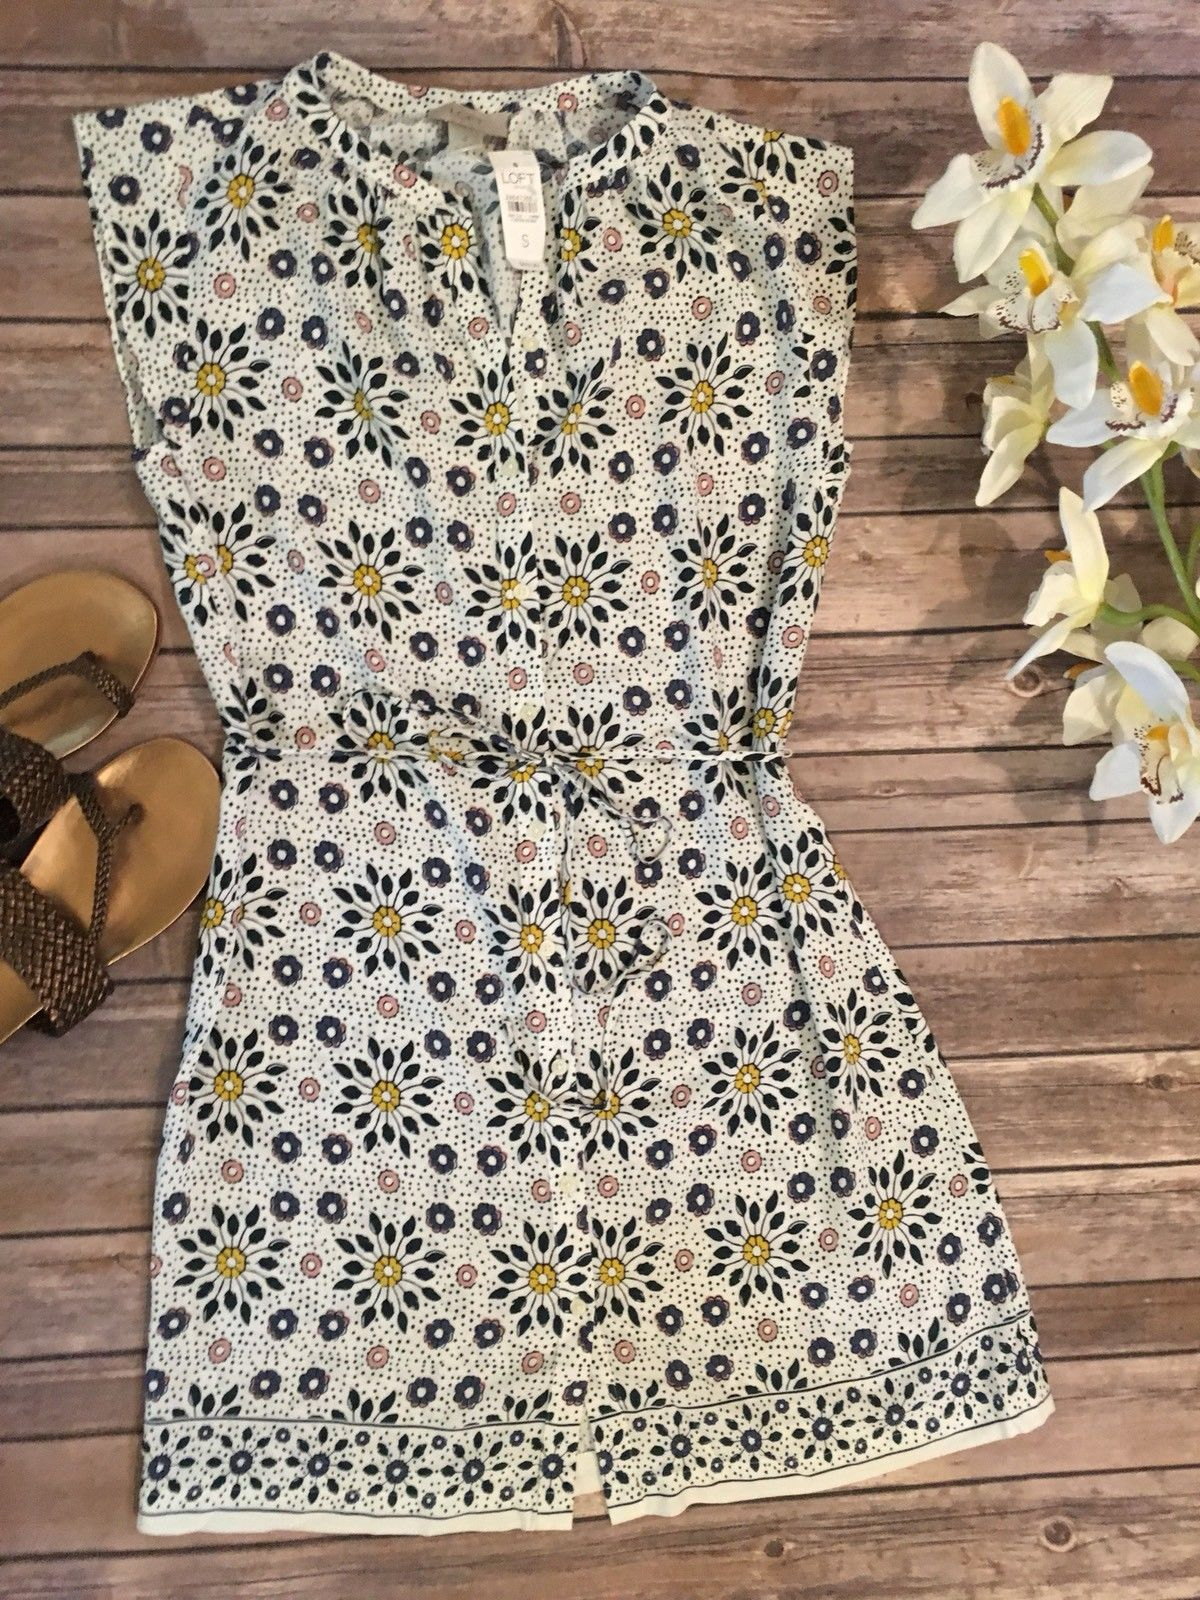 Awesome Nwt Ann Taylor Loft Floral Dress Size Small 2019